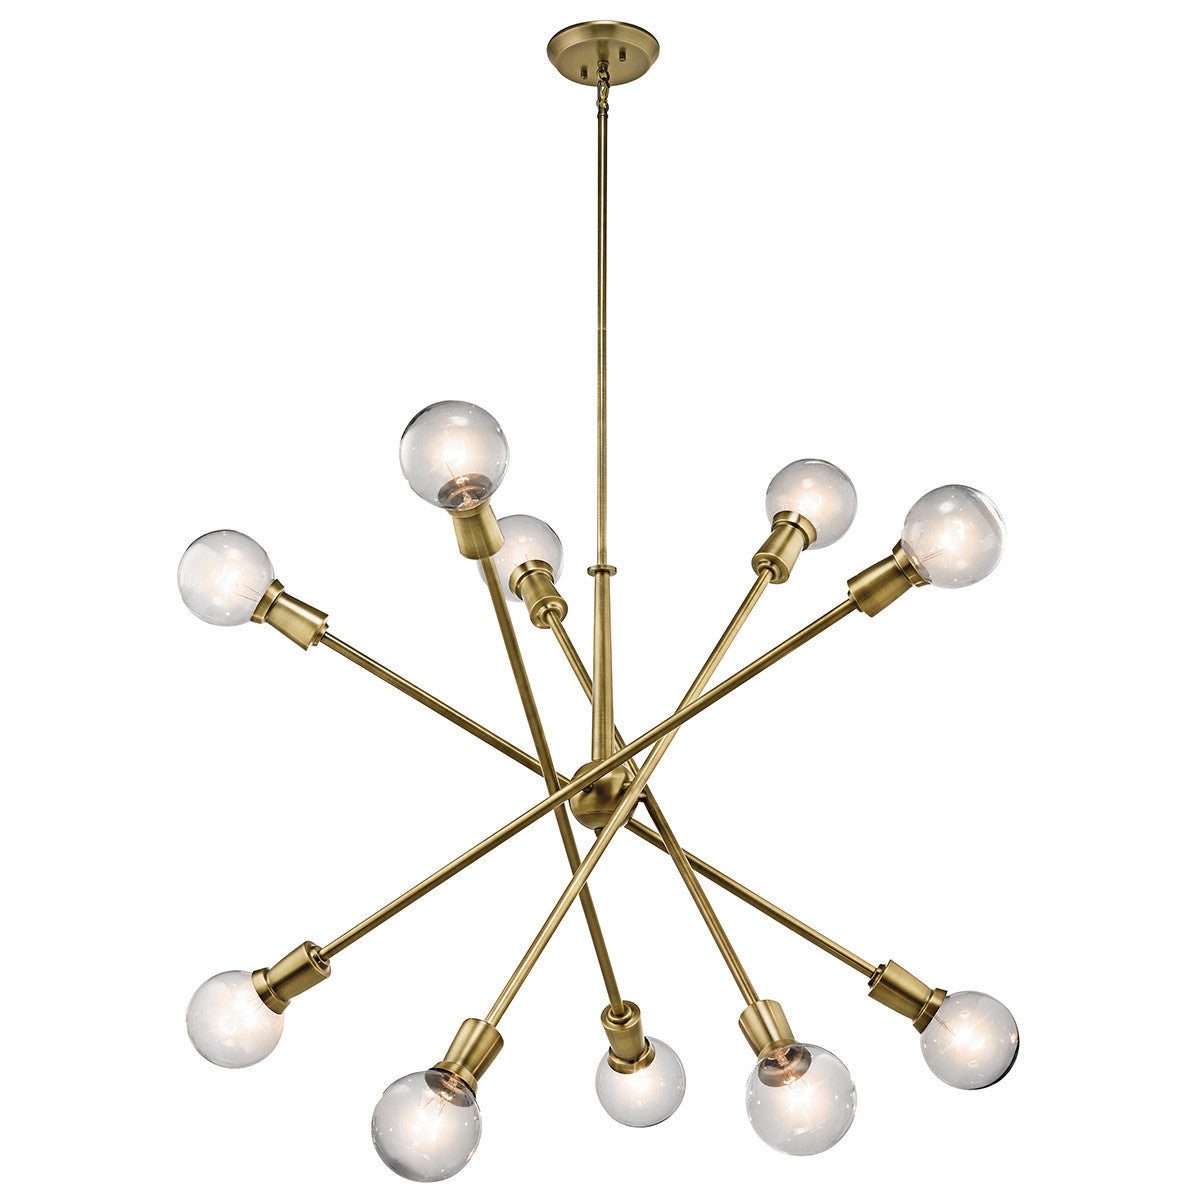 Armstrong Chandelier in Natural Brass by Kichler, 43119NBR